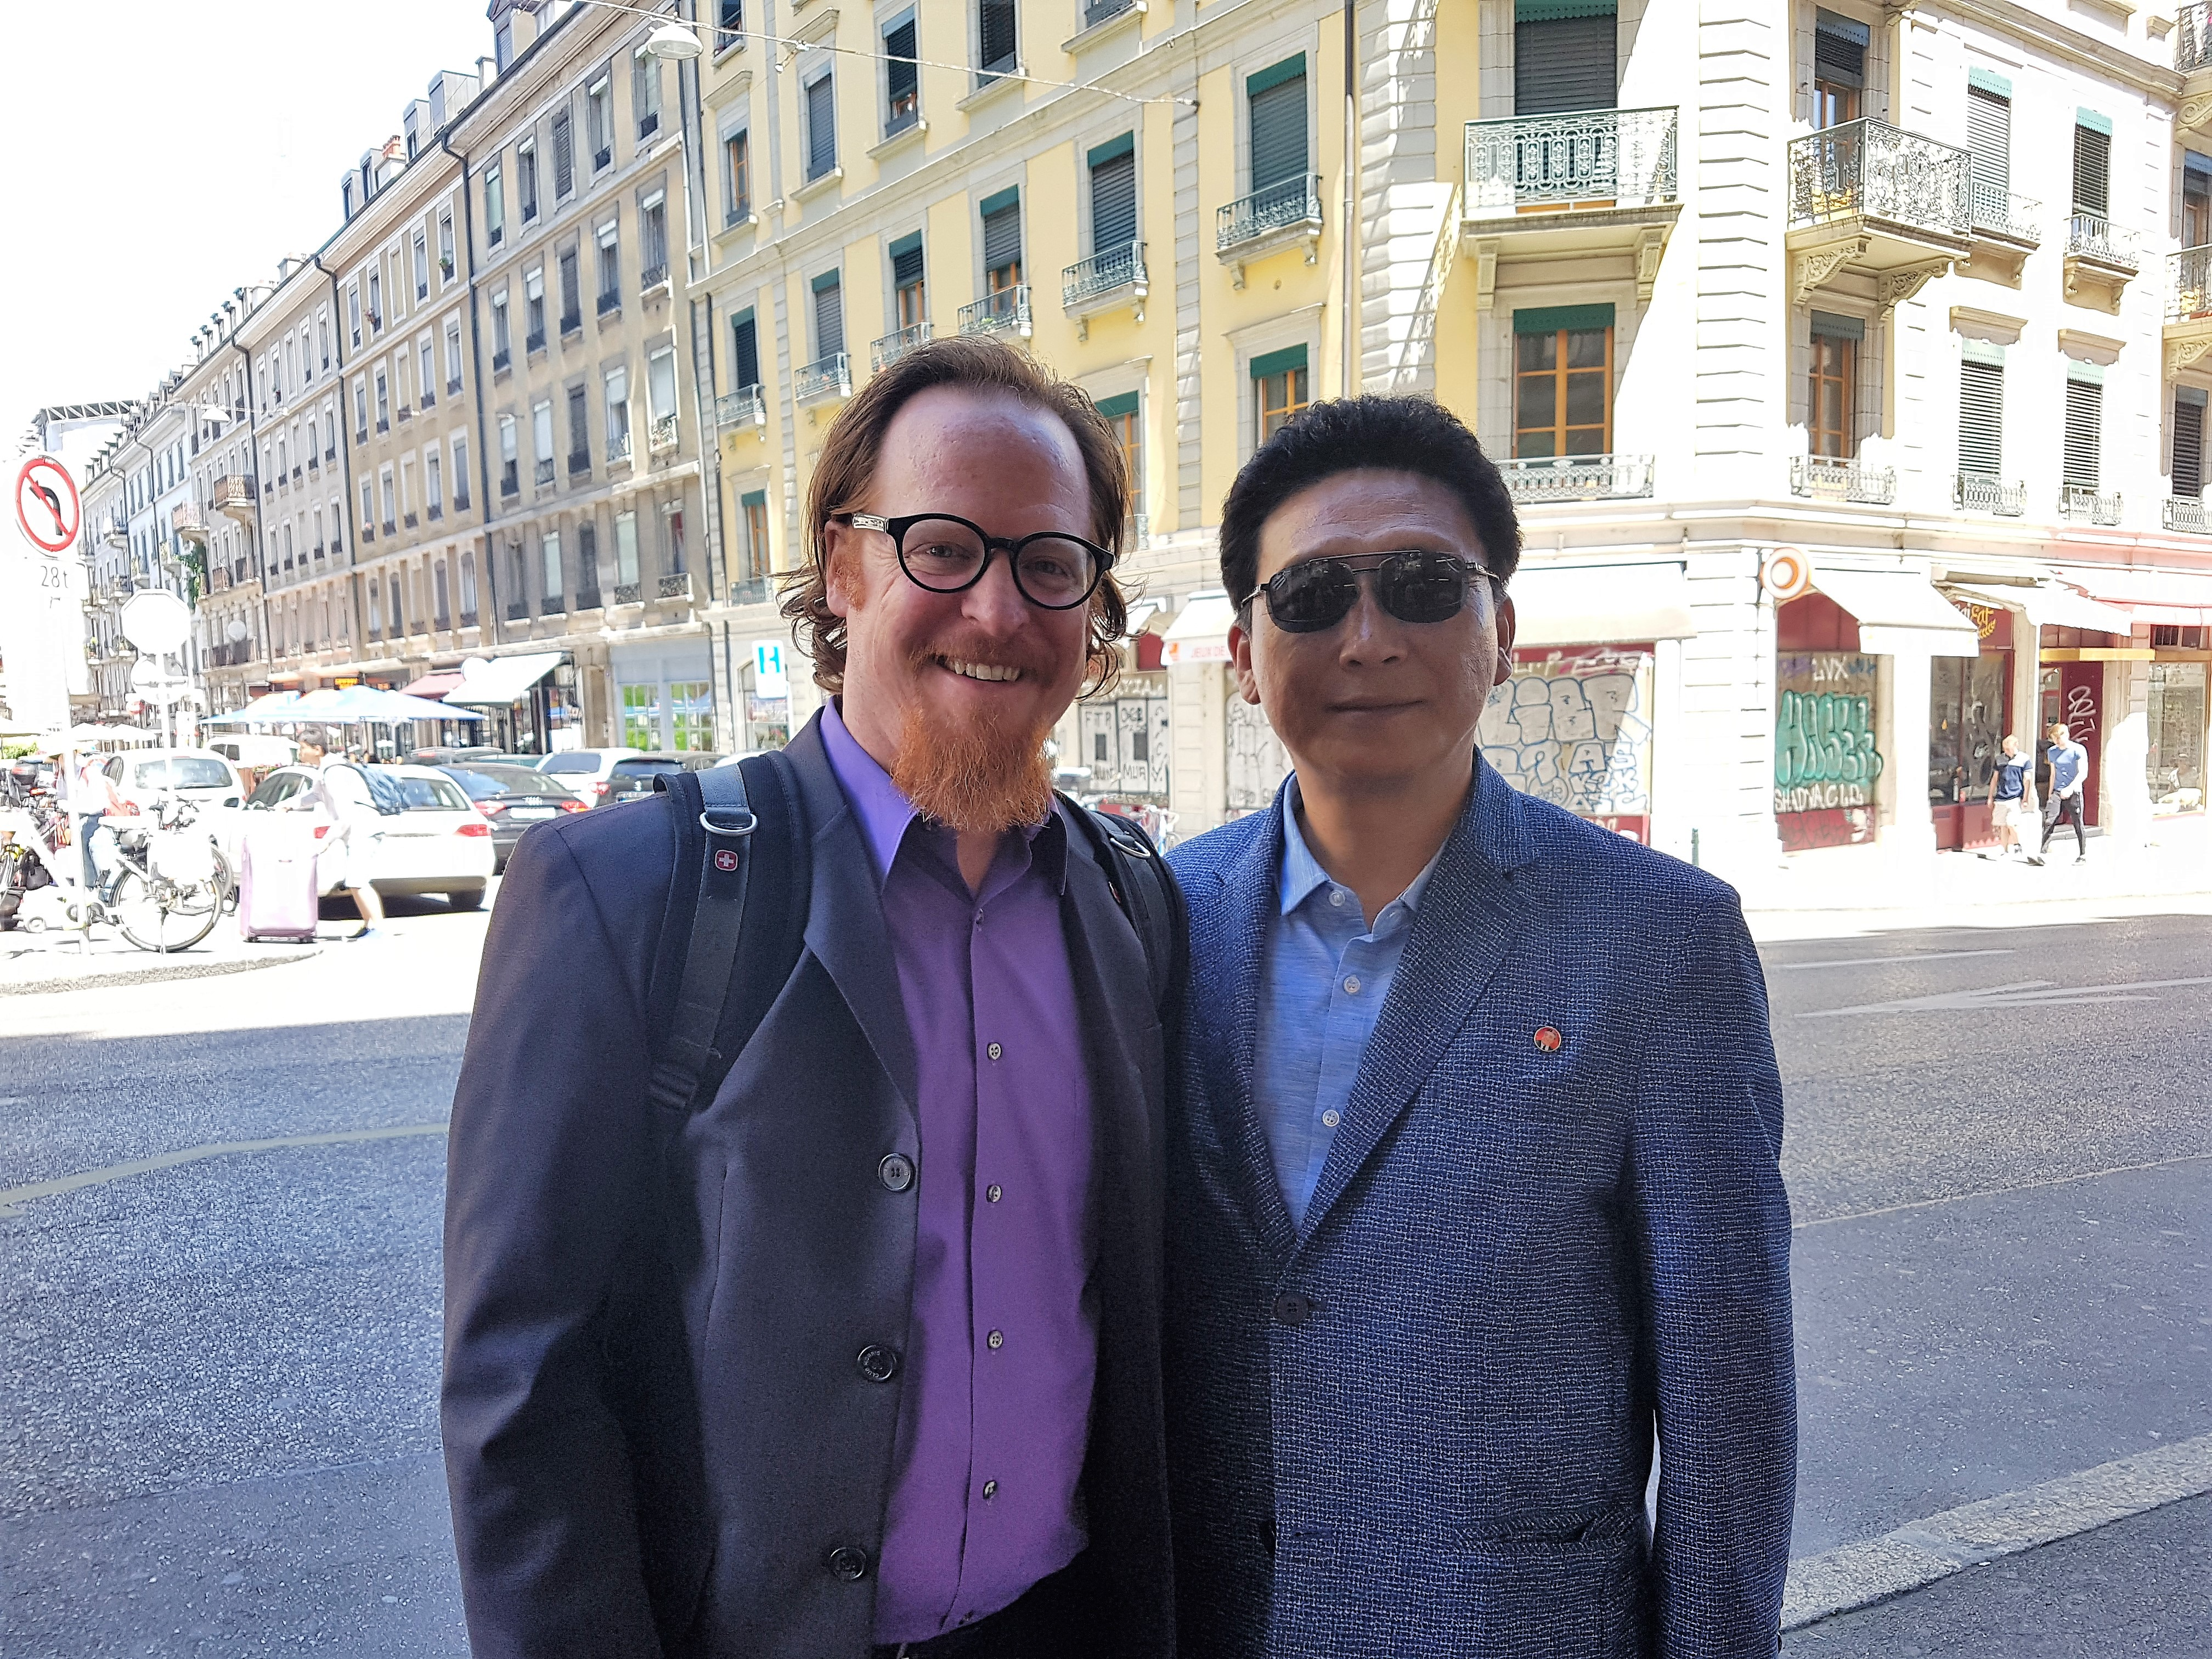 Kurt runs into Rev. Kang of the KCF on the streets of Geneva after the consultation has ended.